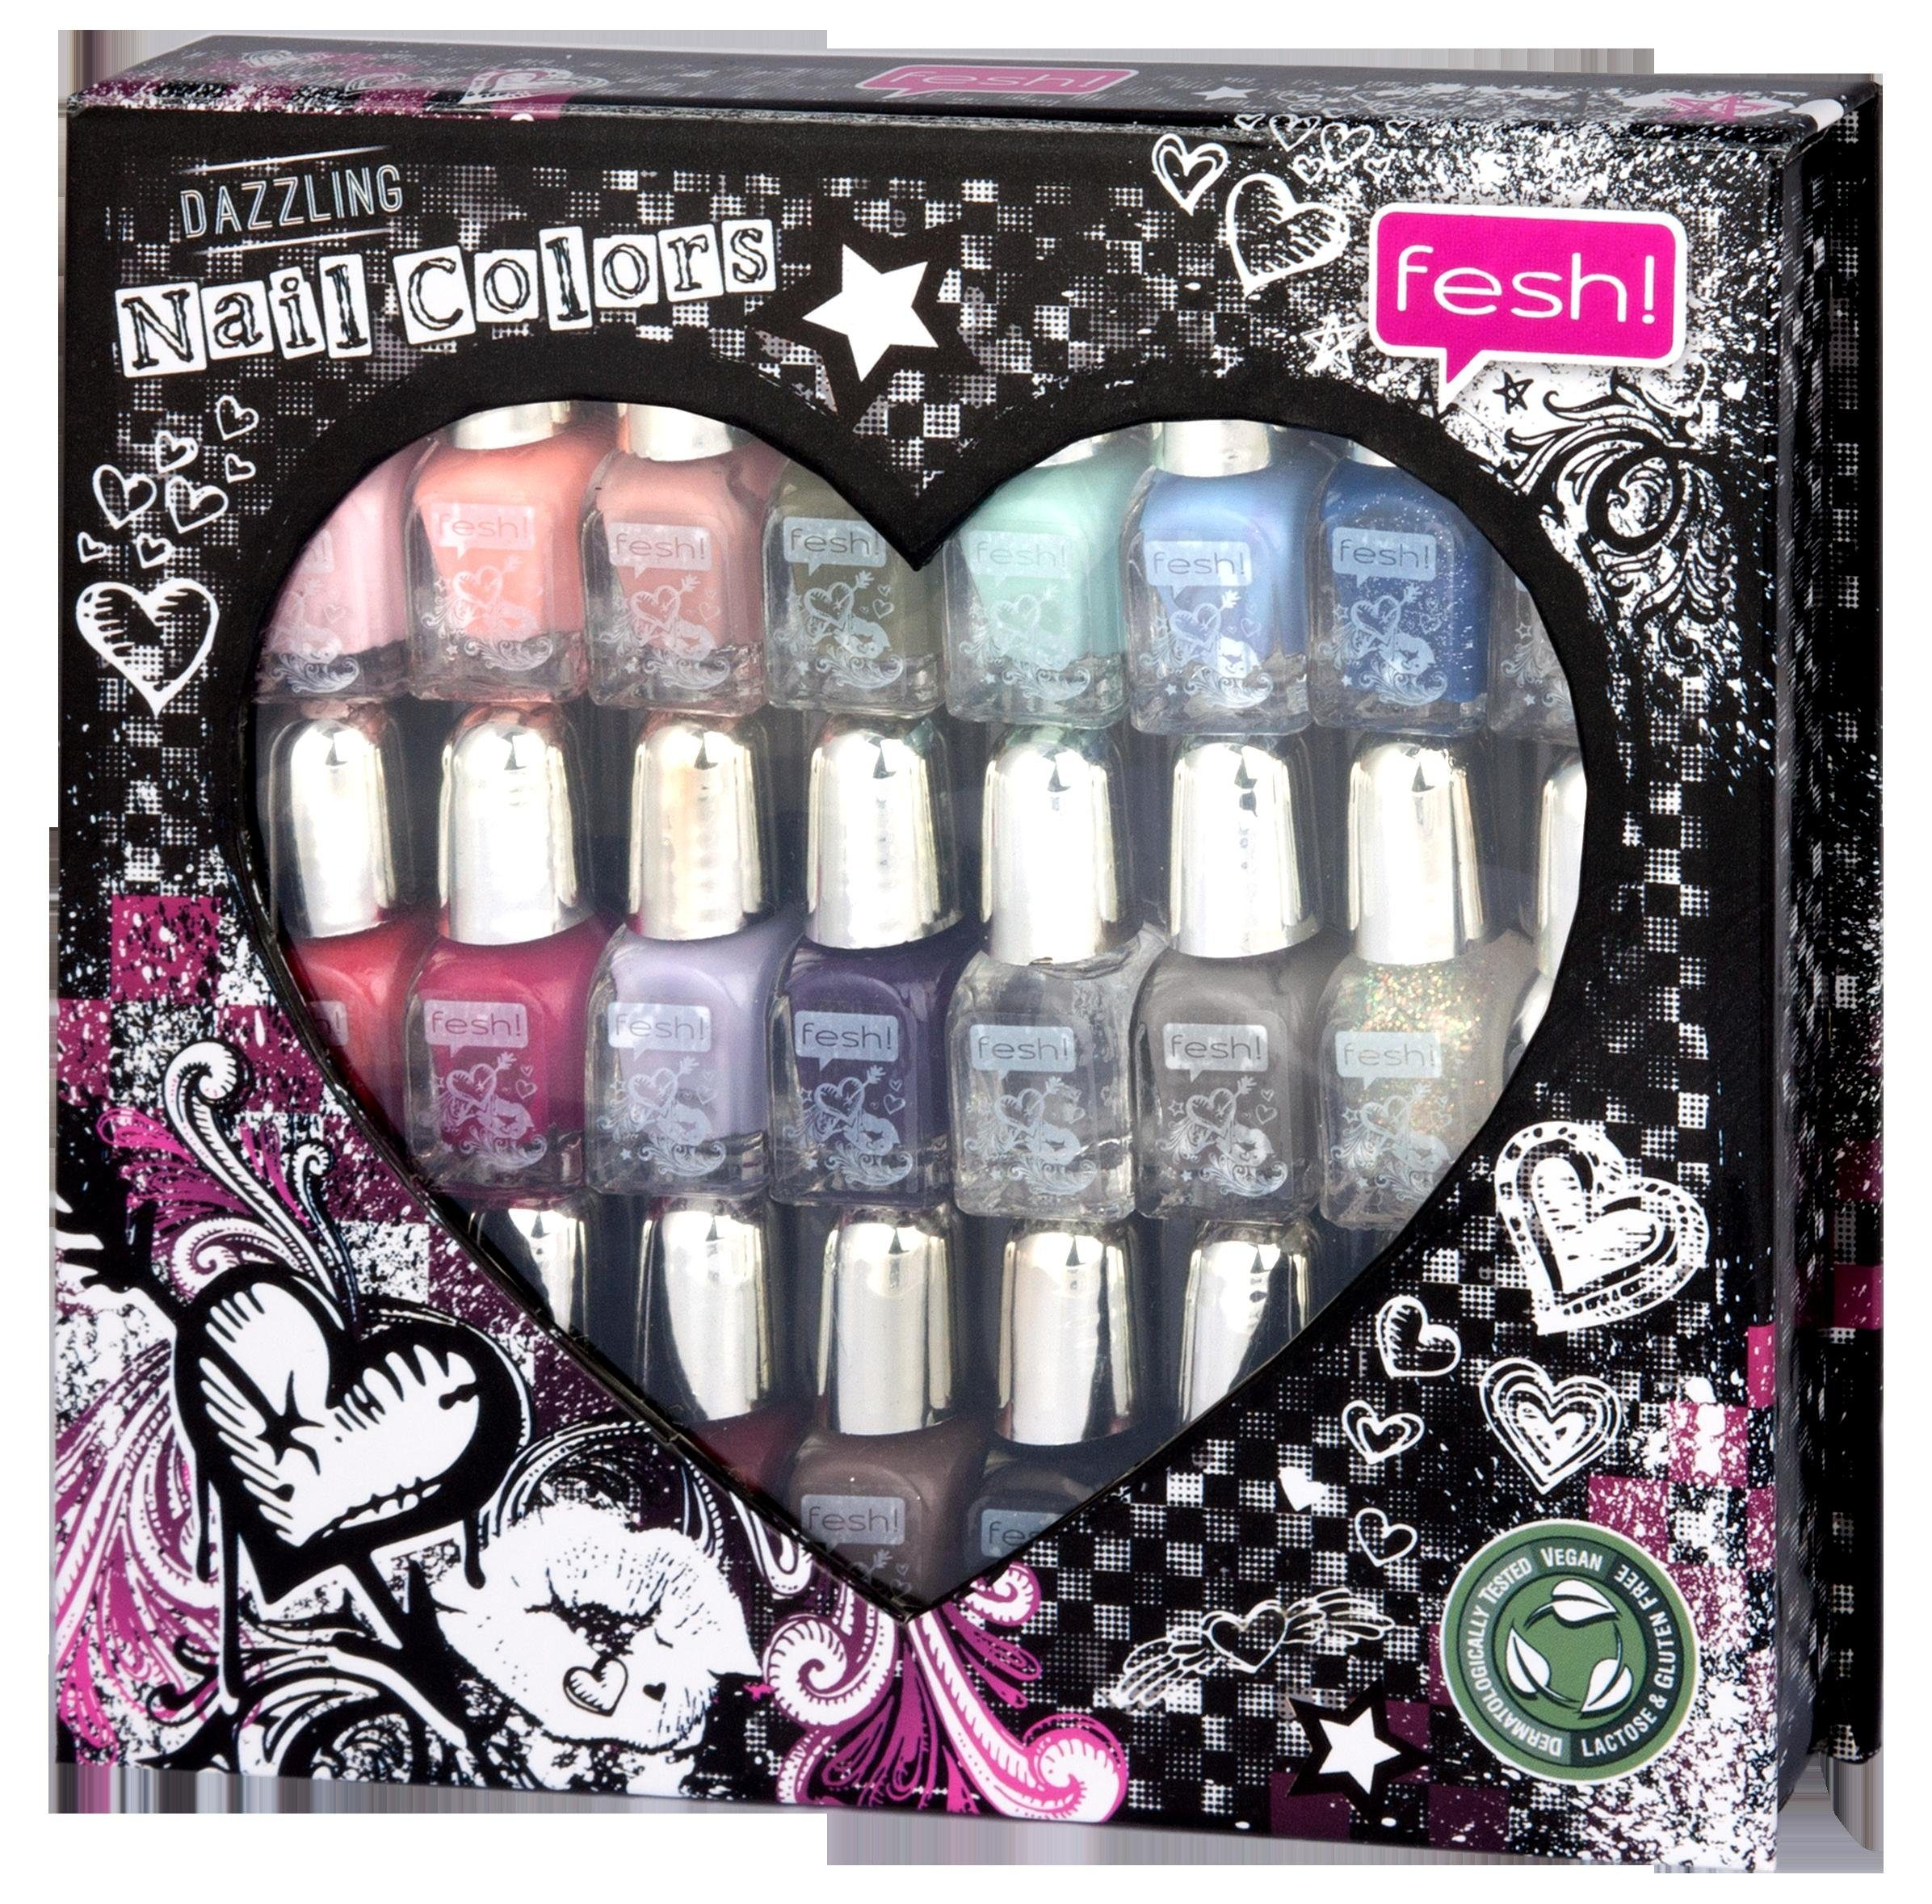 »Dazzling Nail Colors«, Nagellack-Set